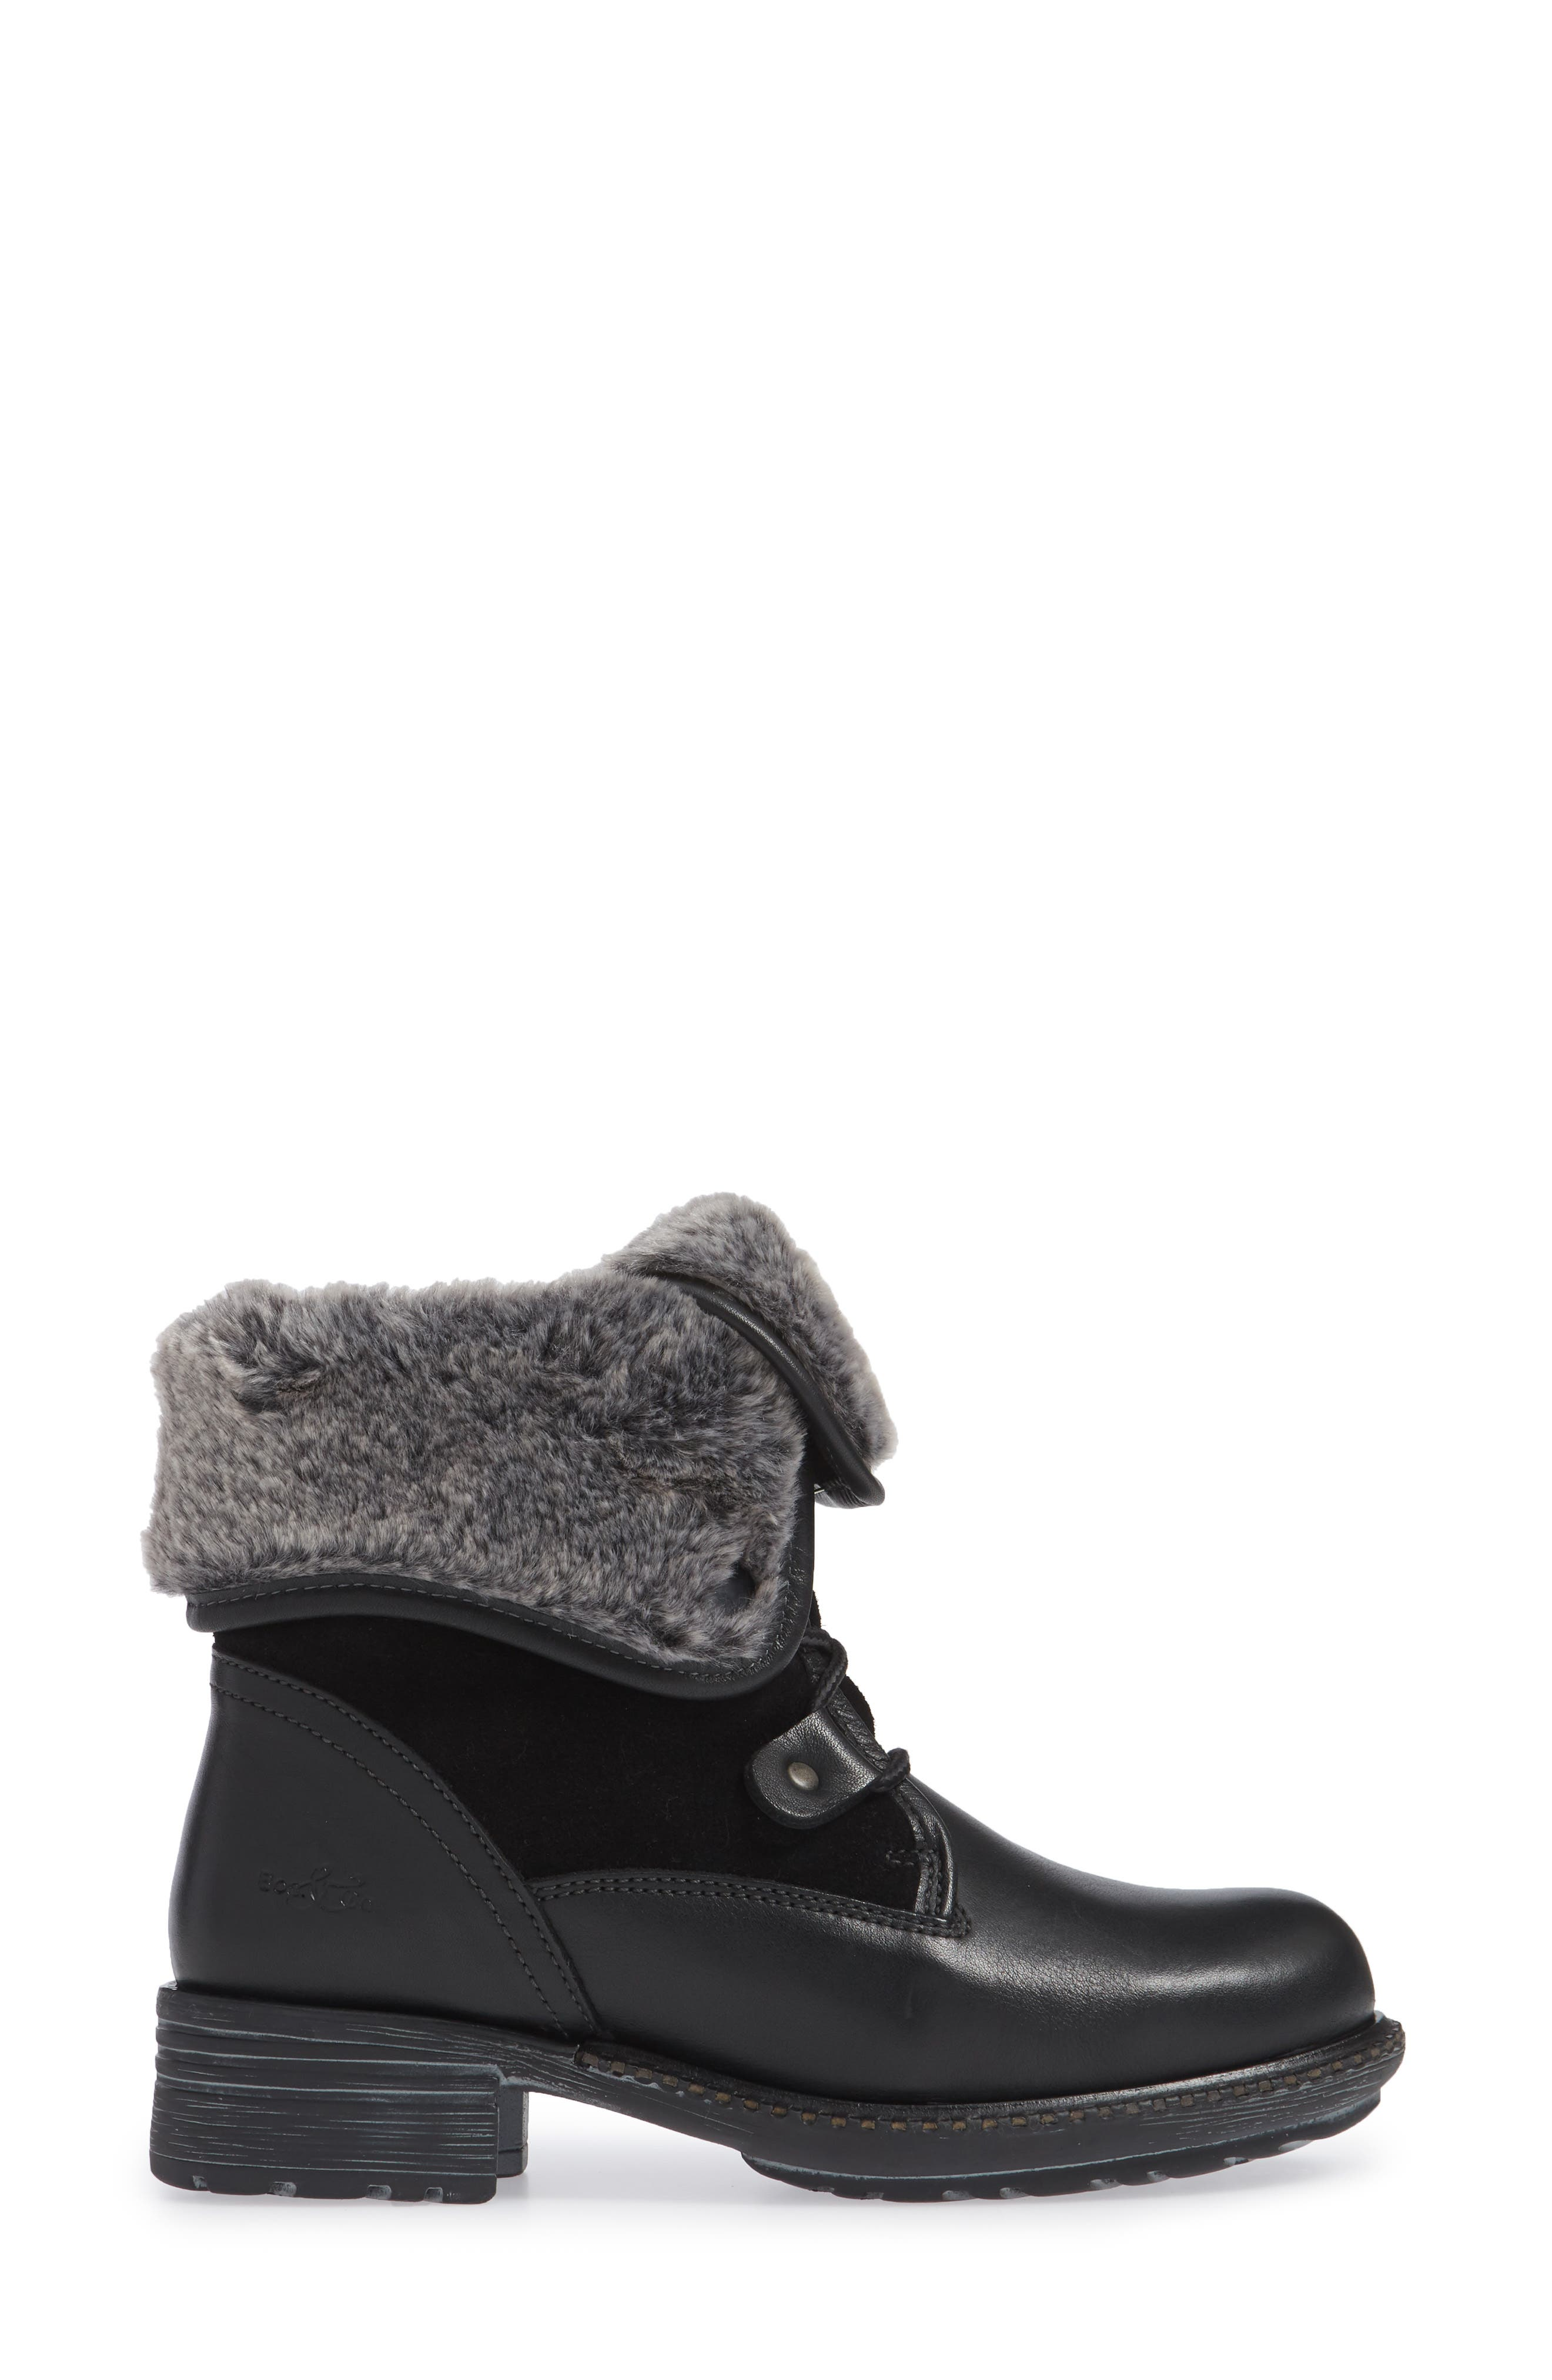 BOS. & CO., Springfield Waterproof Winter Boot, Alternate thumbnail 3, color, BLACK LEATHER